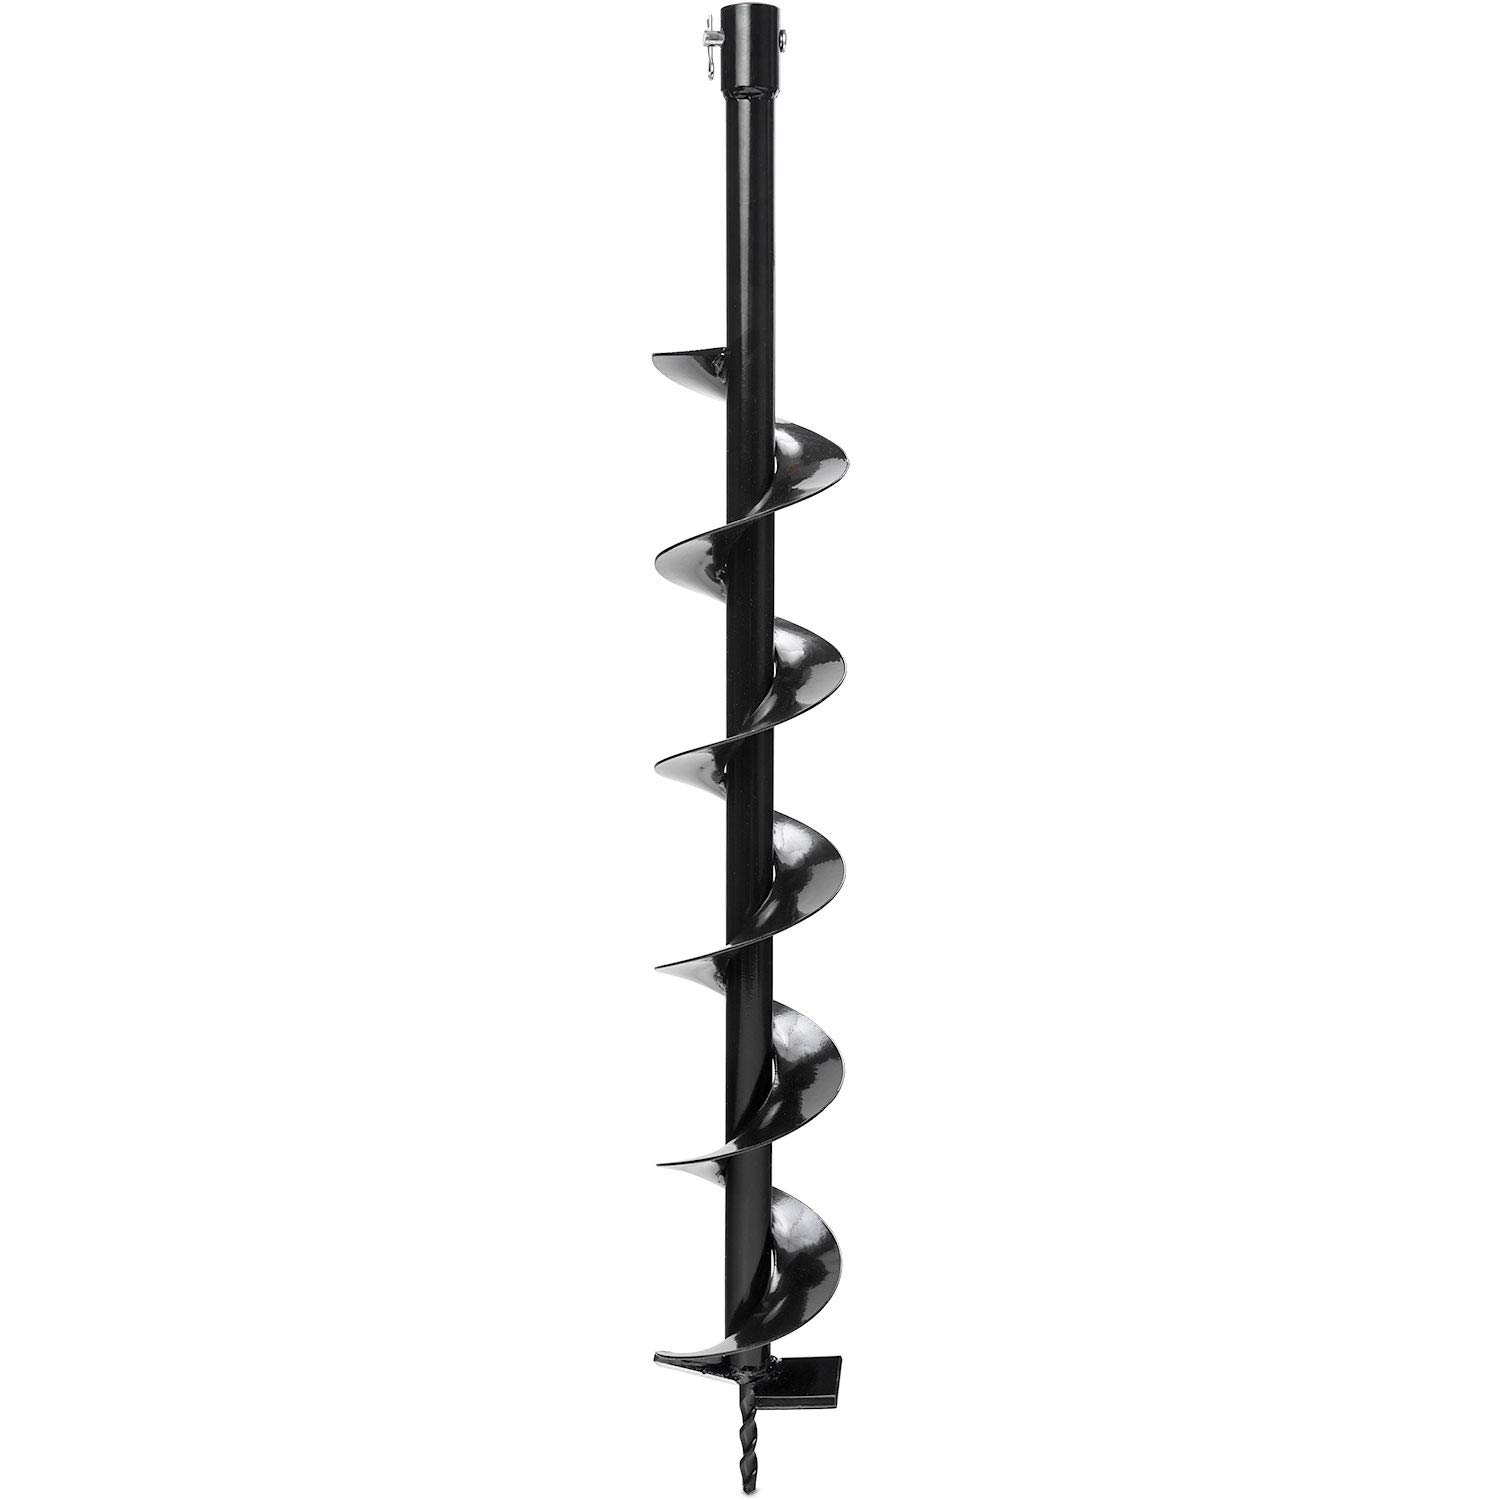 Auger Post Hole Digger Bits 4' x 32' Deep Professional Fence Holes 3/4' Shaft - Perfect for Quickly Digging Holes to Install Fence Posts, Decks, Planting Trees, Shrubs, Ice Fishing, and More! KapscoMoto